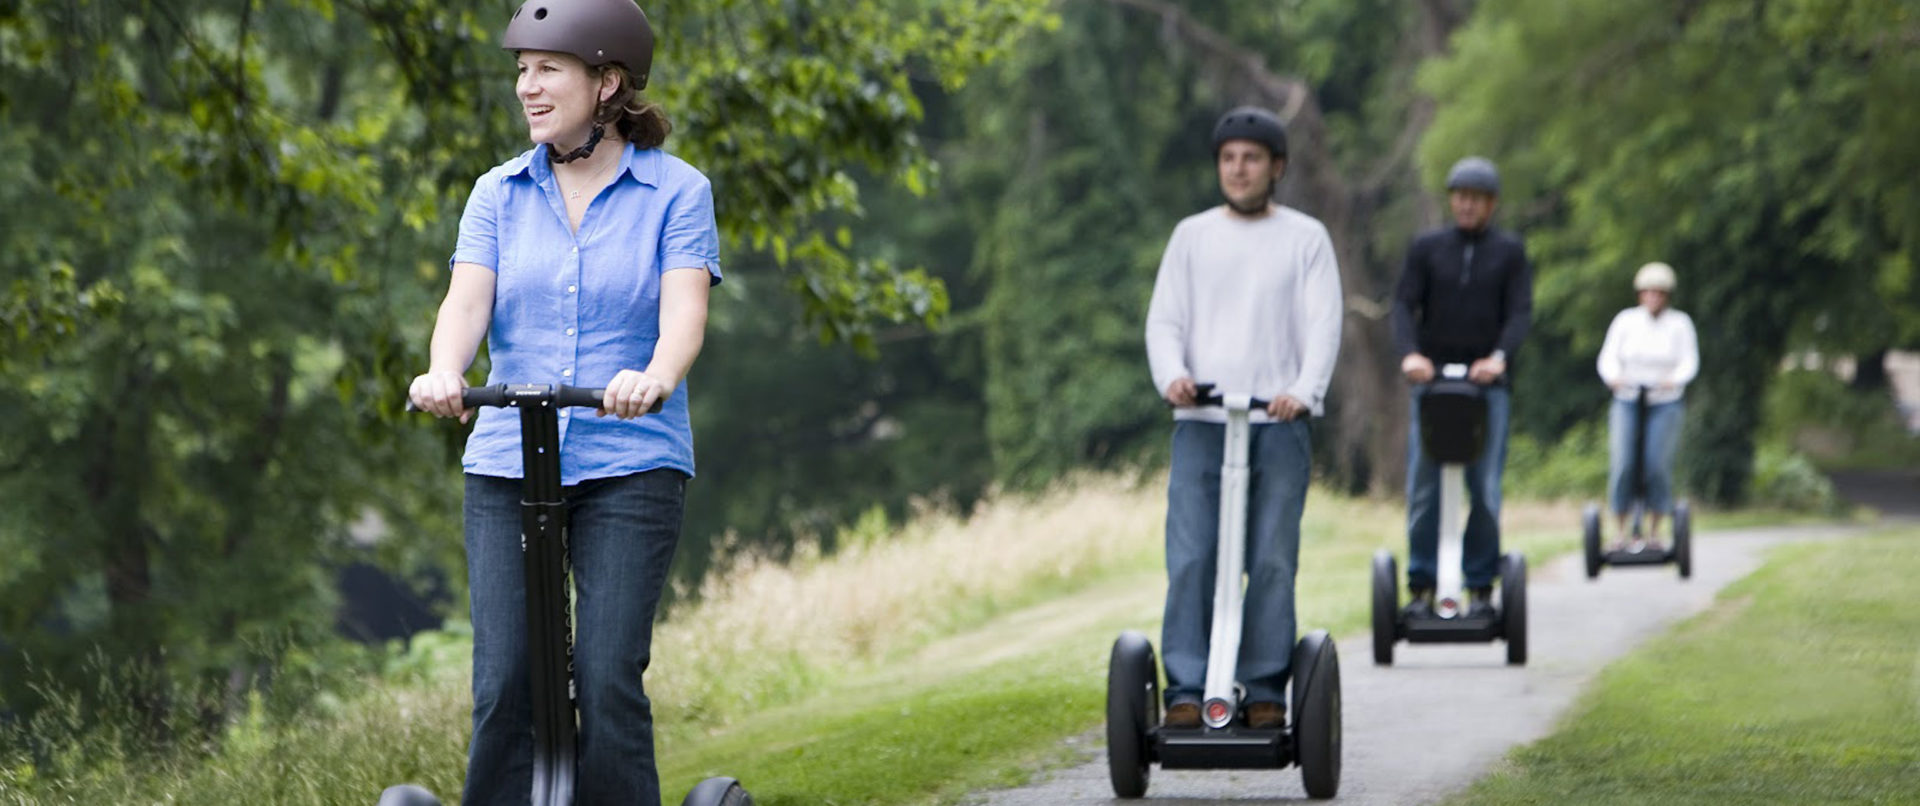 versailles-teens-tour-private-segway1